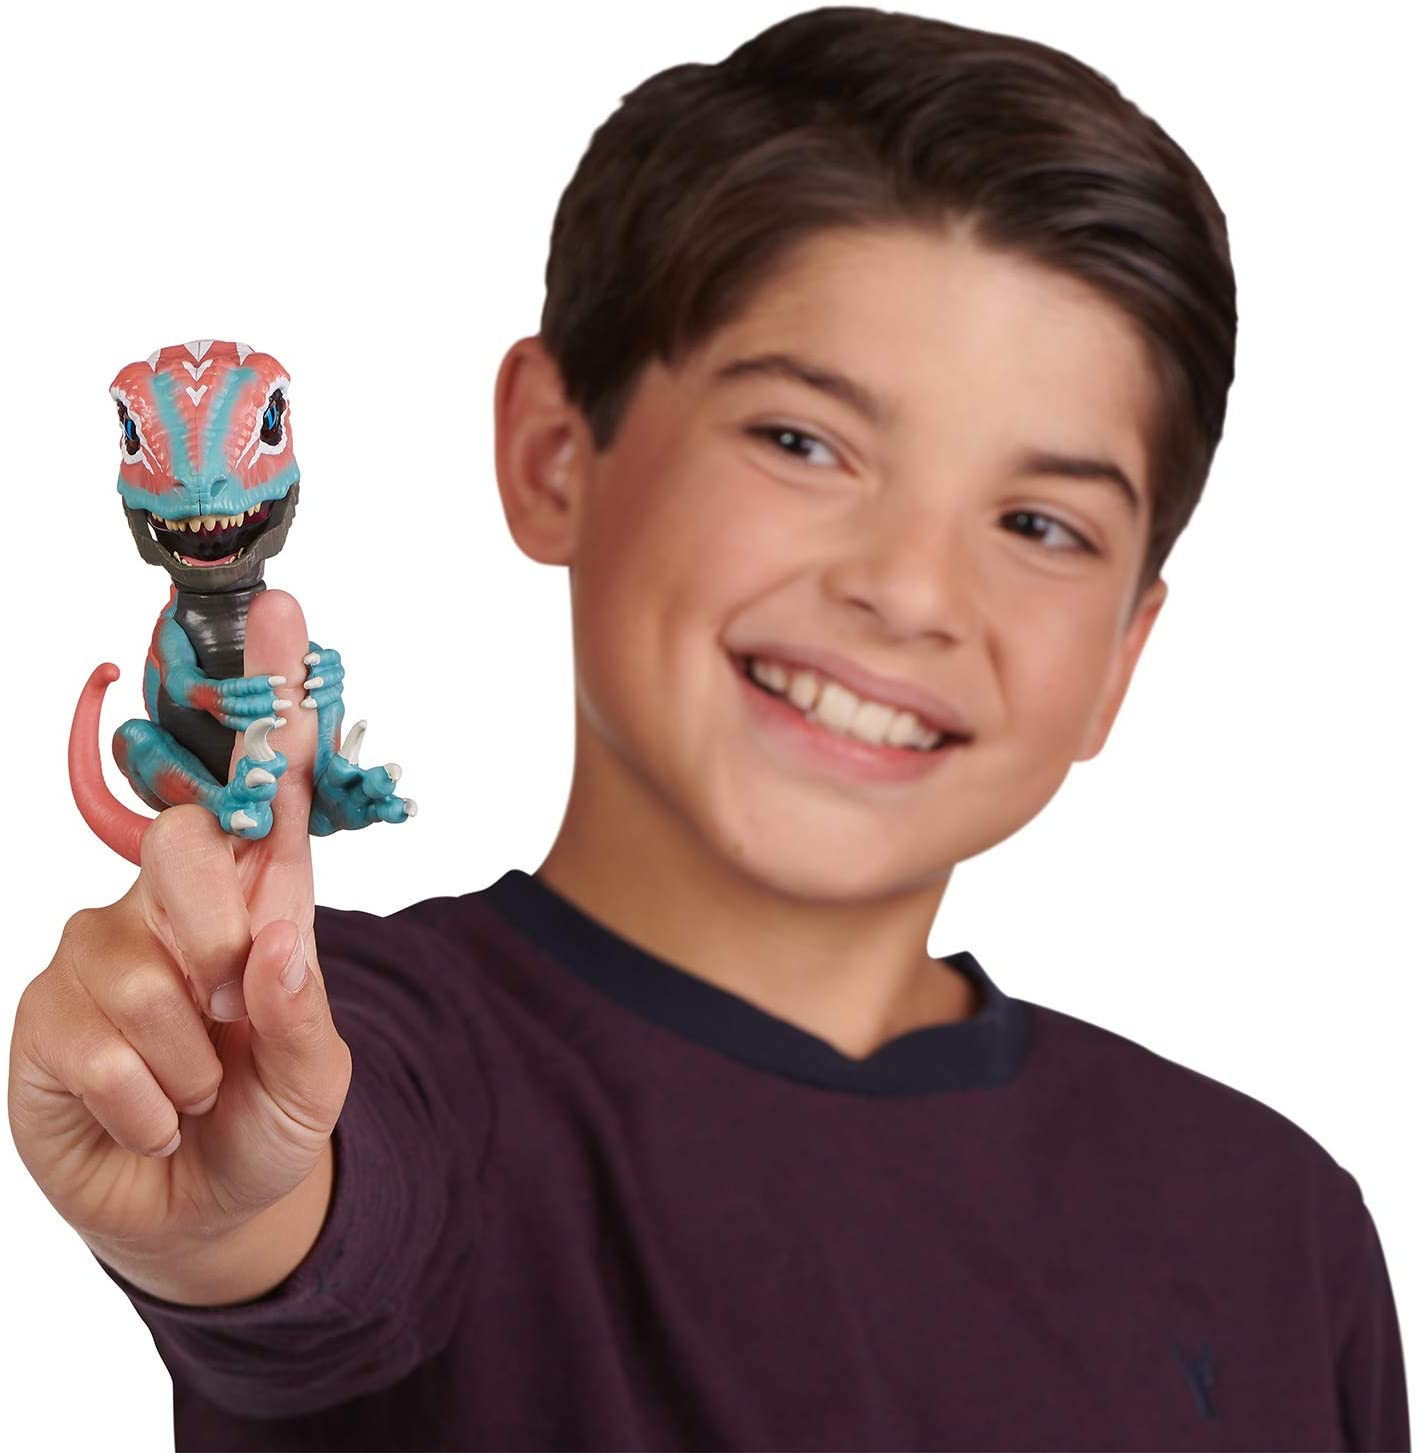 Taming Raptor Finger Toys-Series 2-Mutant (Red and Blue)-Interactive Collectible Dinosaur Toy